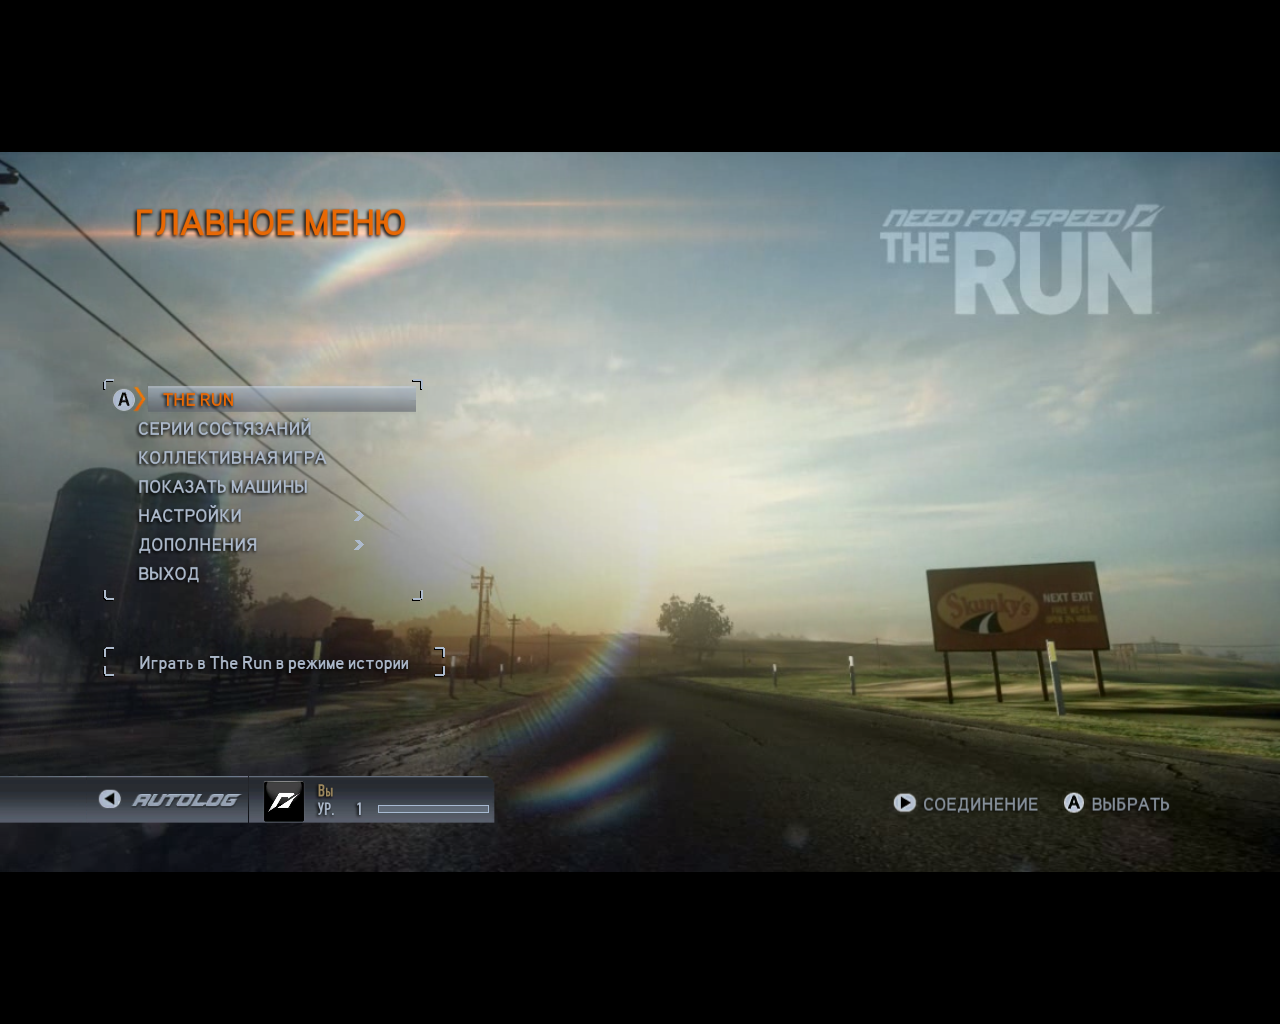 https://www.mobygames.com/images/shots/l/571276-need-for-speed-the-run-windows-screenshot-main-menu-russian.png